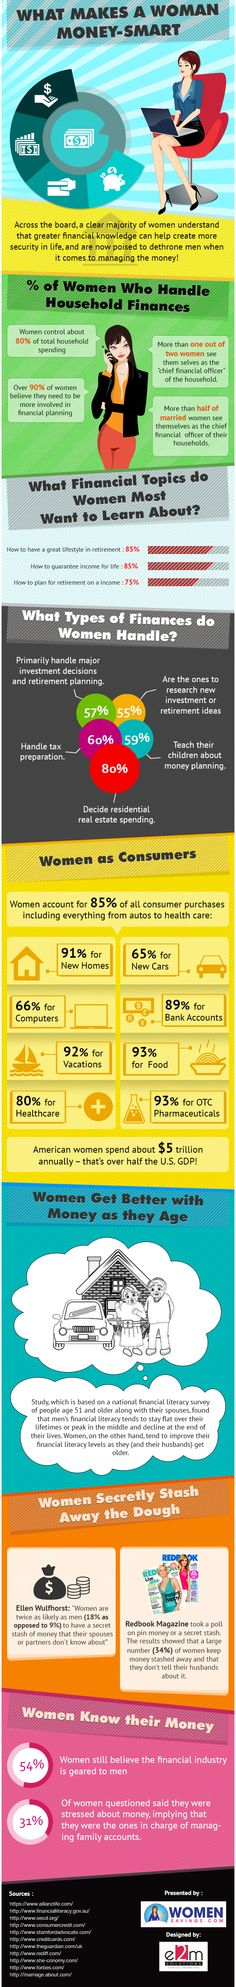 This infographic visually captures the reasons that make women money smart and what makes their financial grey cells tick? A look at the infographic and you will realize that women really know their money.